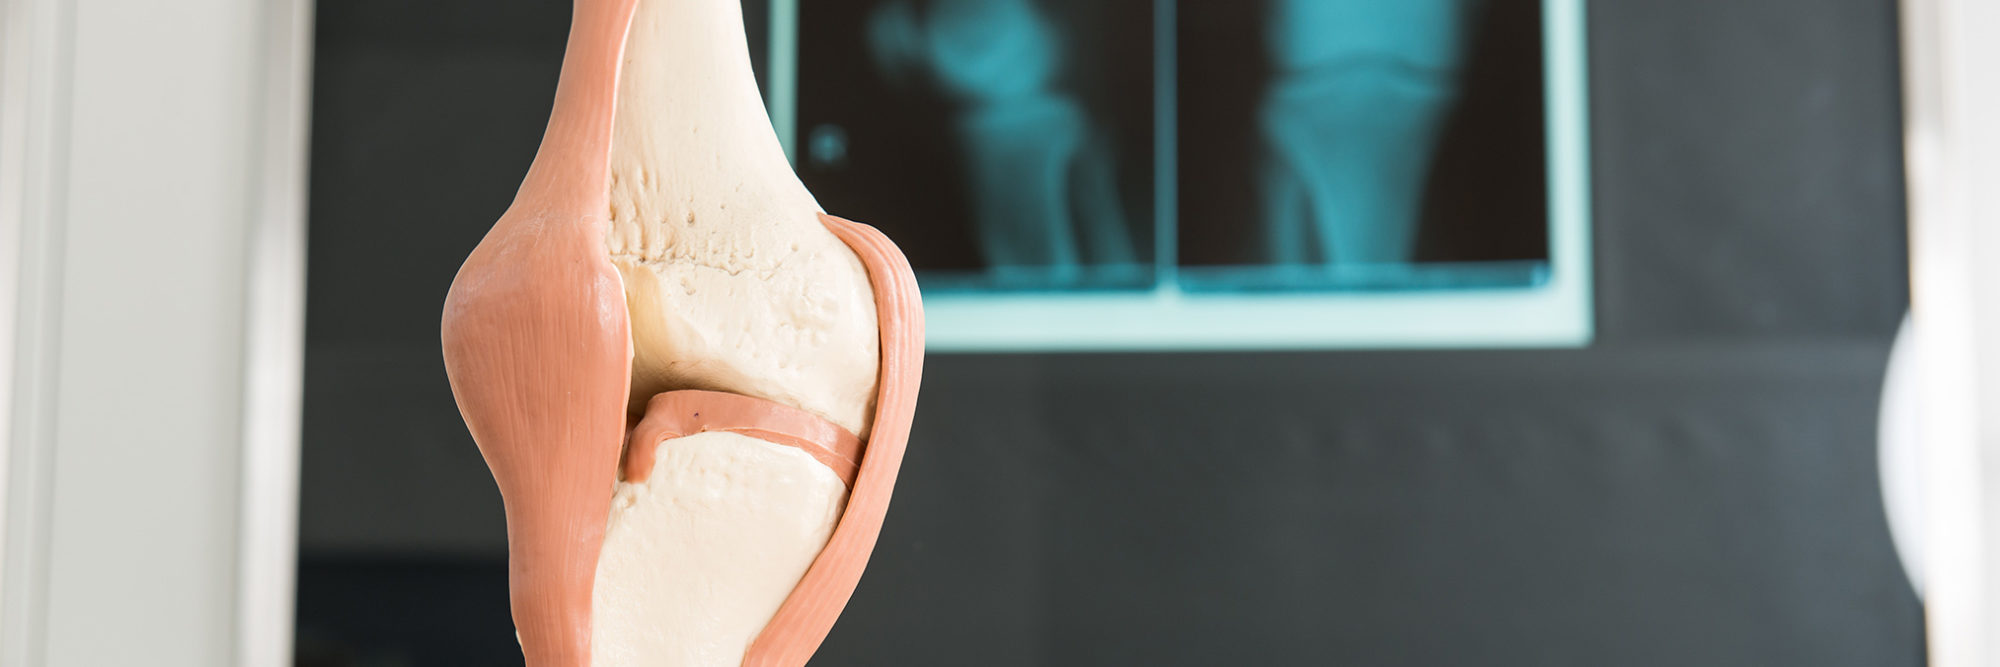 what to expect after ACL surgery